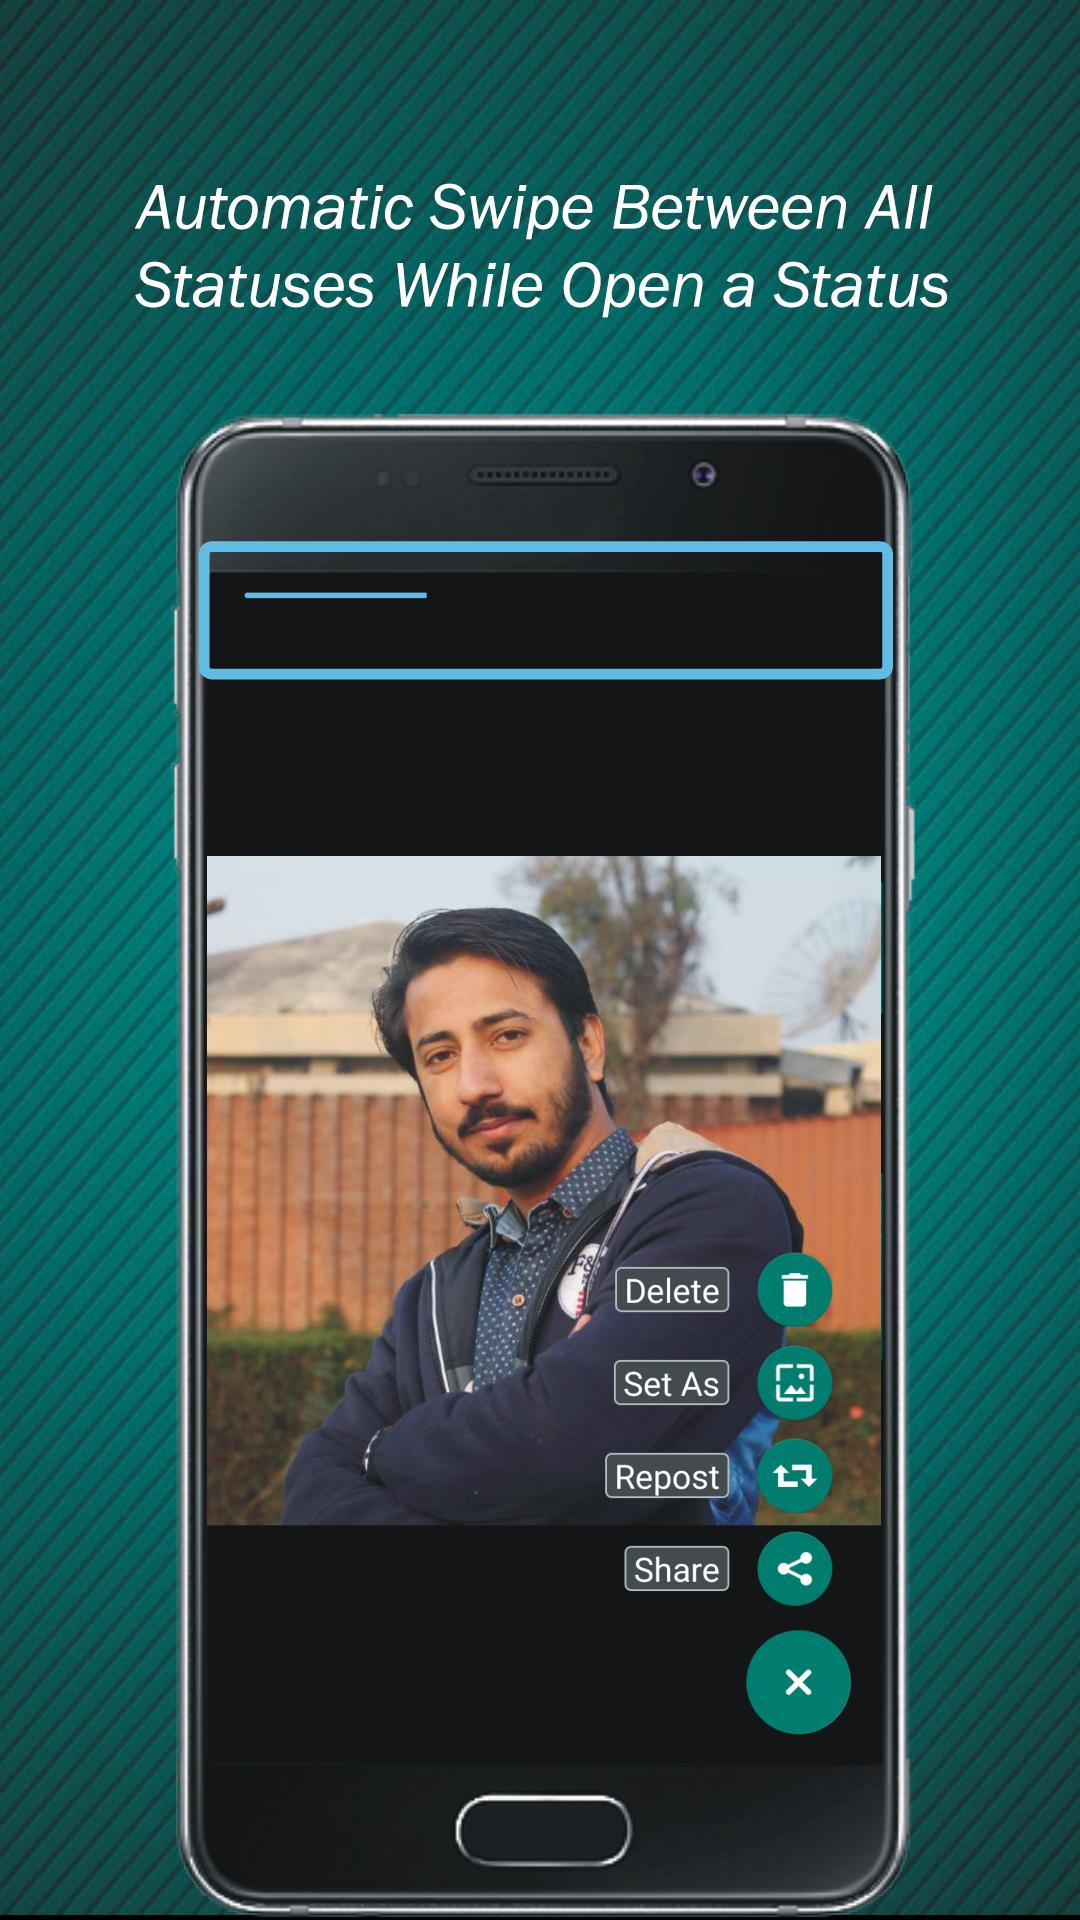 Status Save To Gallery for Android - APK Download